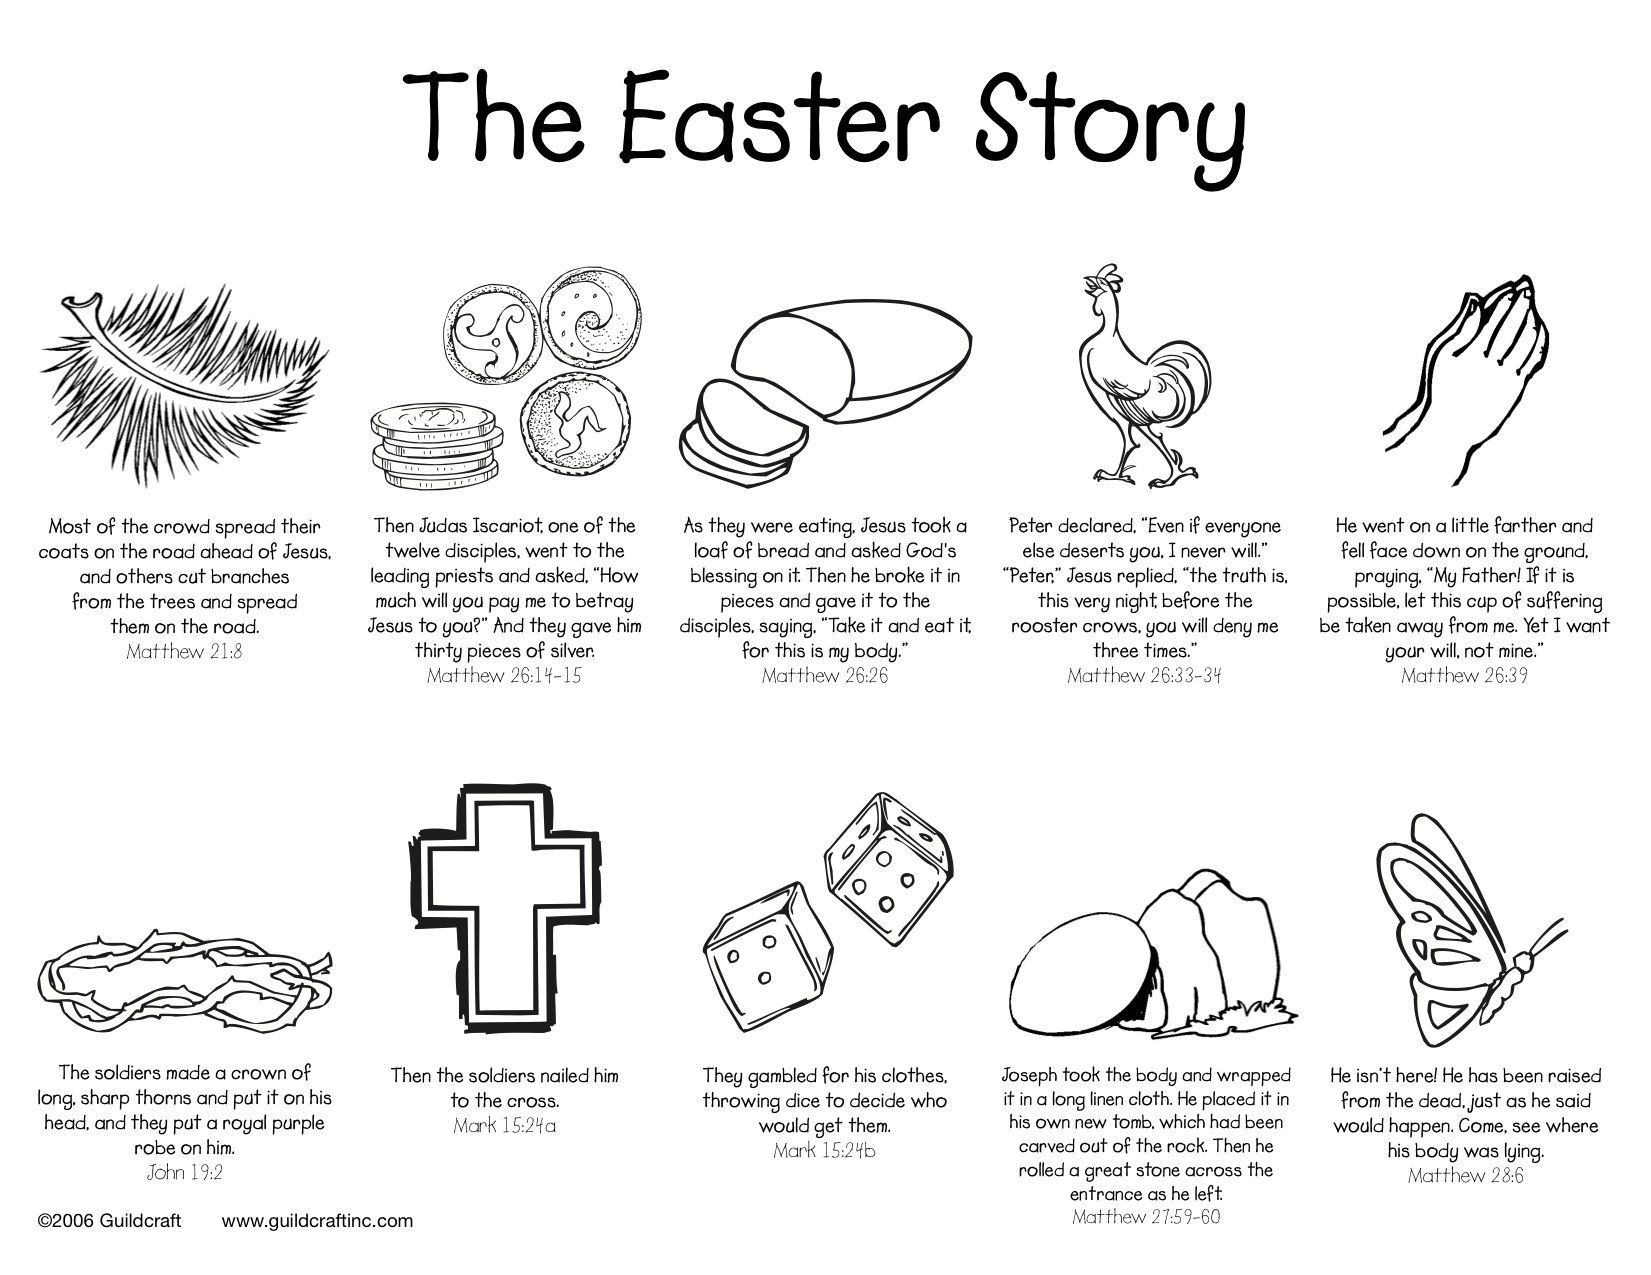 Sunday School Valentines Day Coloring Pages Easter Story Coloring Page Guildcraft Arts Amp Crafts Blog